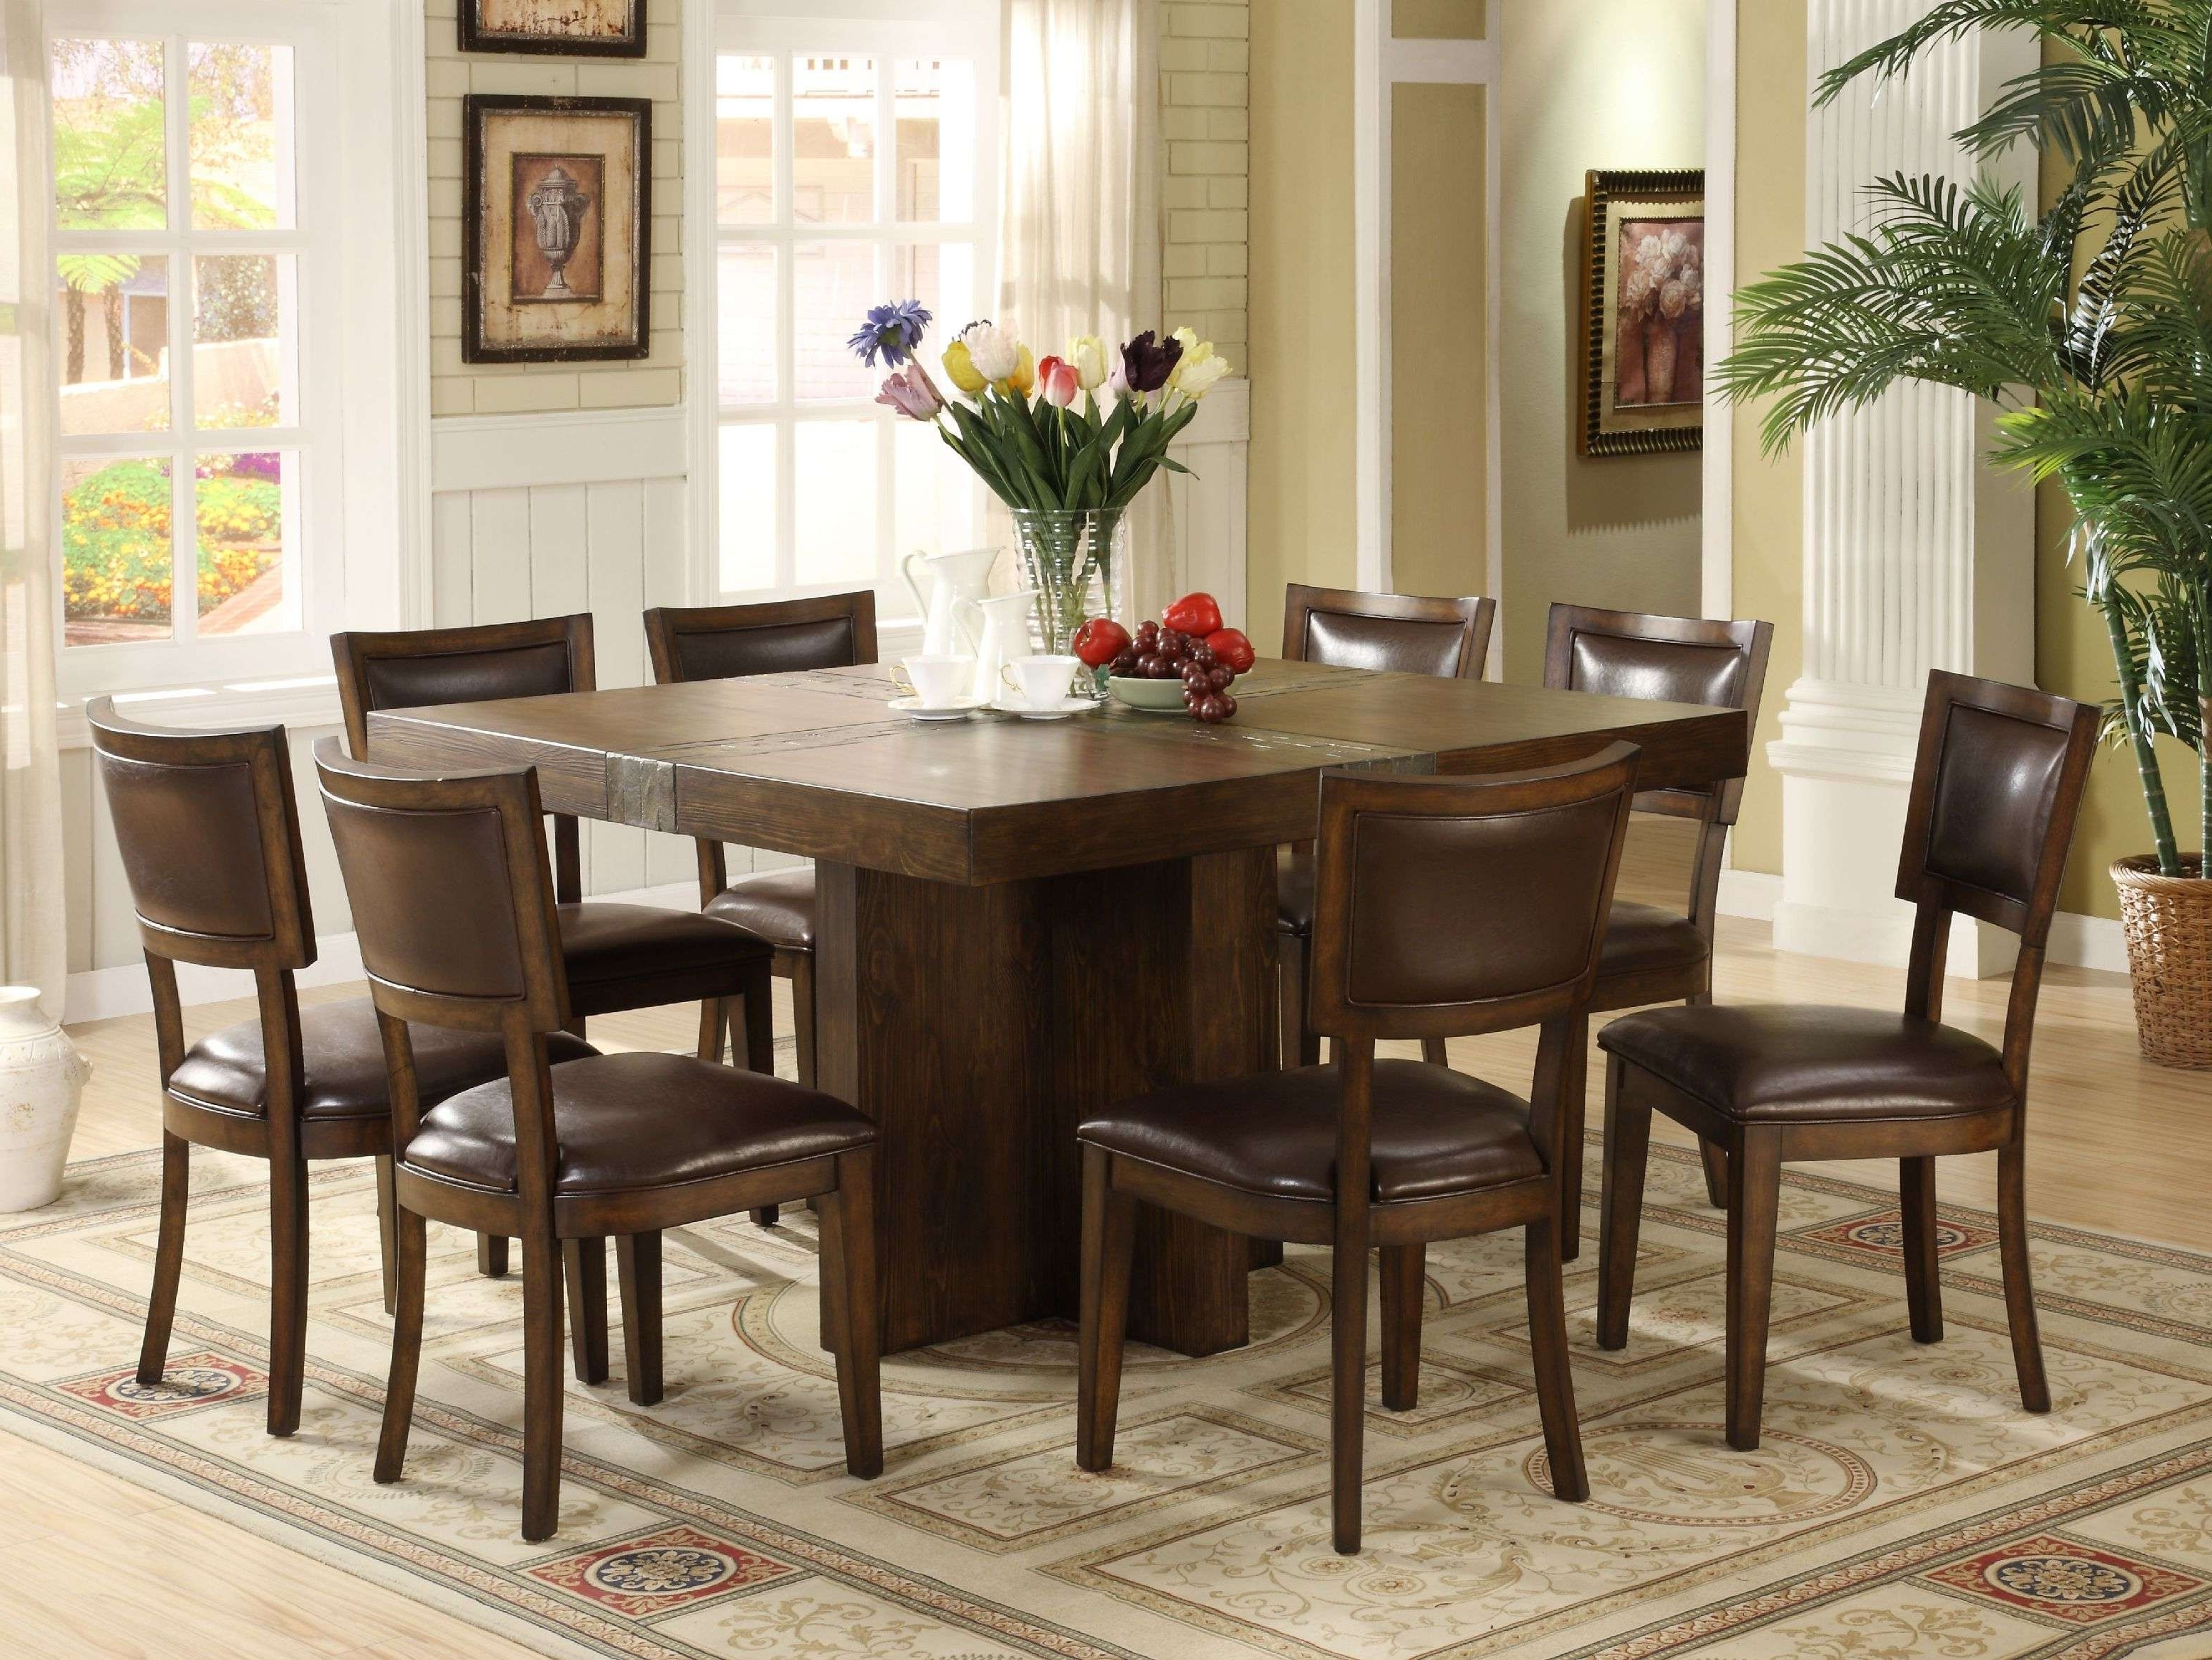 8 Seater Dining Tables And Chairs With Preferred 10 Seater Dining Table And Chairs Beautiful Best 8 Seater Dining (View 13 of 25)